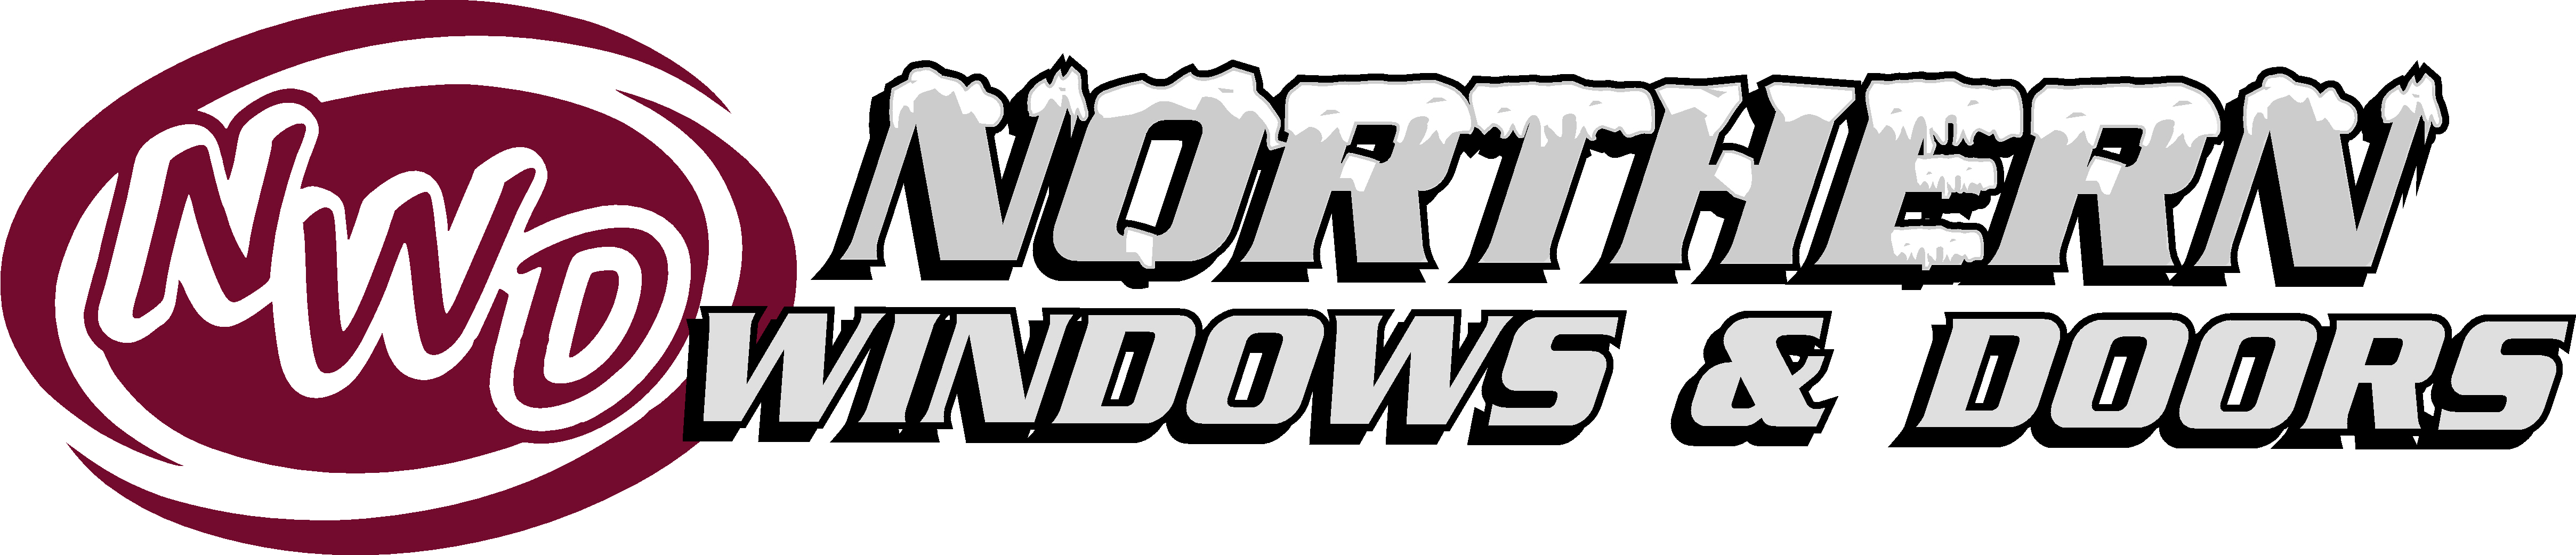 Northern Windows and Doors